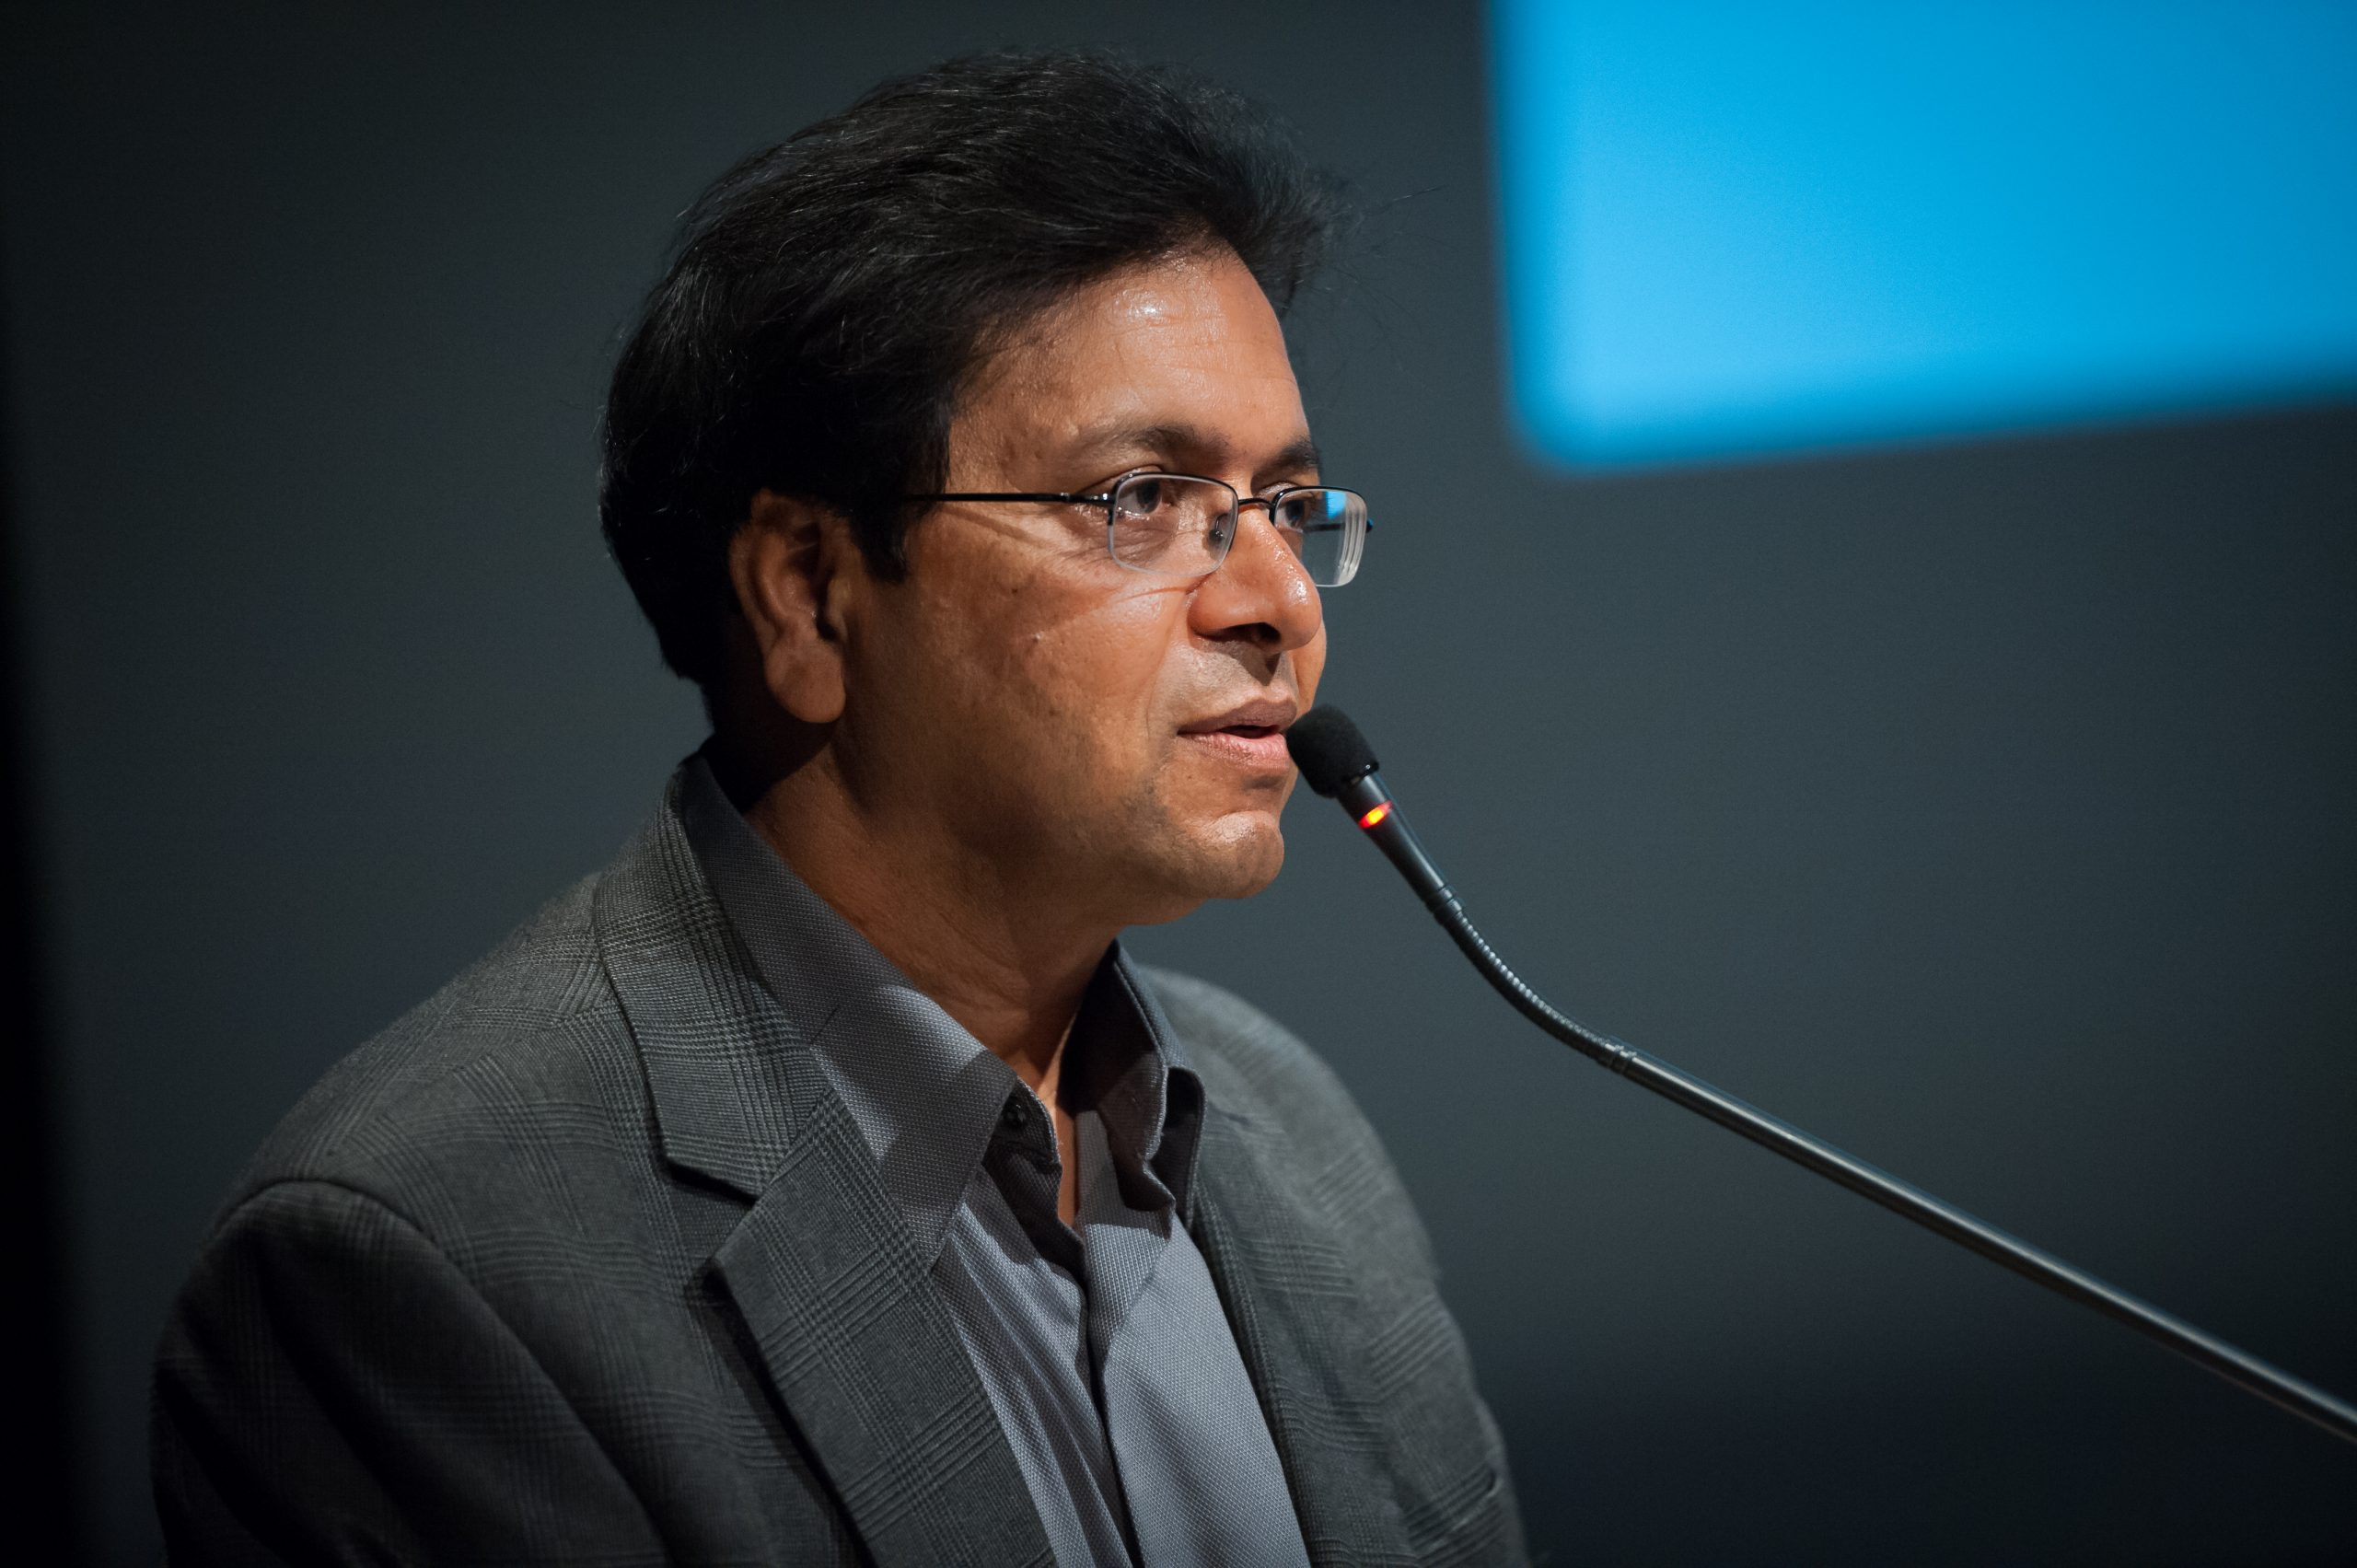 Photo of Rajesh Gupta HDSI UCSD Founding Director